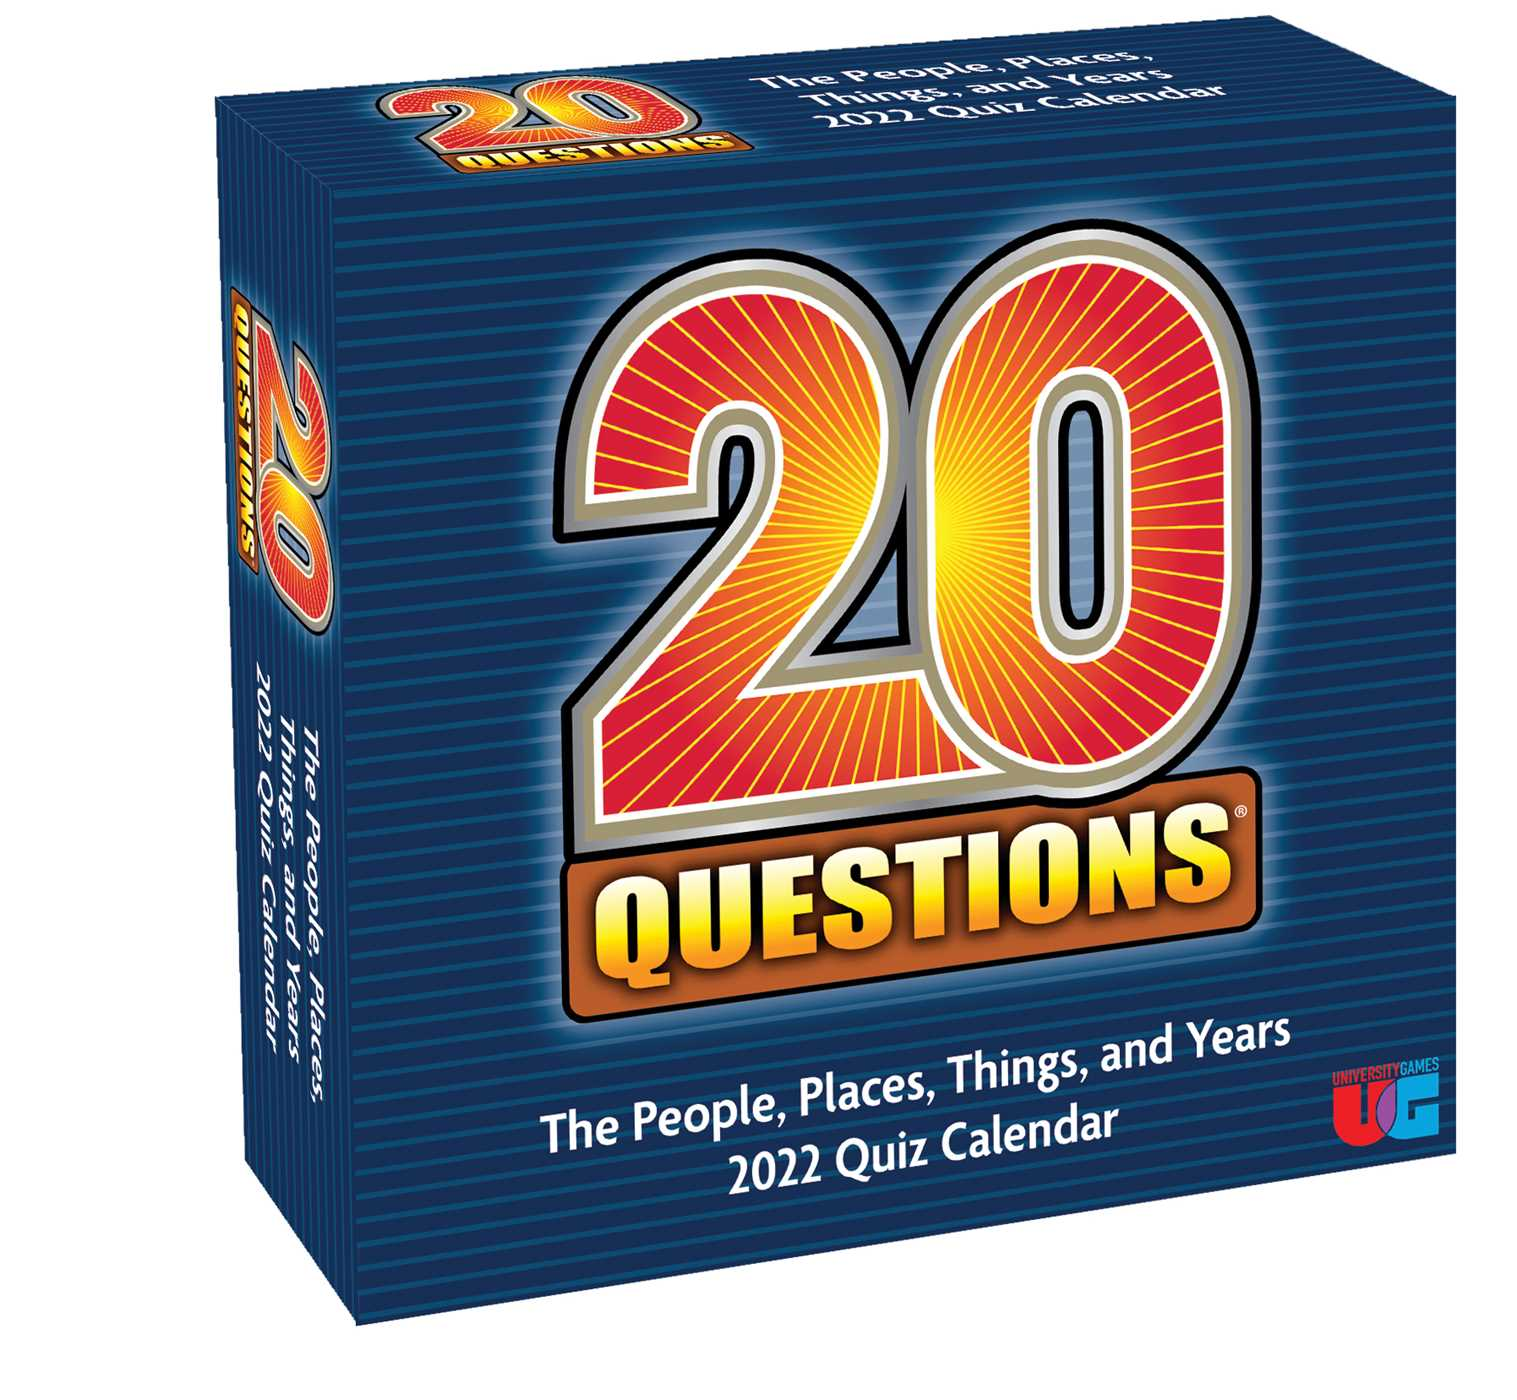 Ohio University 2022 Calendar.20 Questions 2022 Day To Day Calendar Book Summary Video Official Publisher Page Simon Schuster